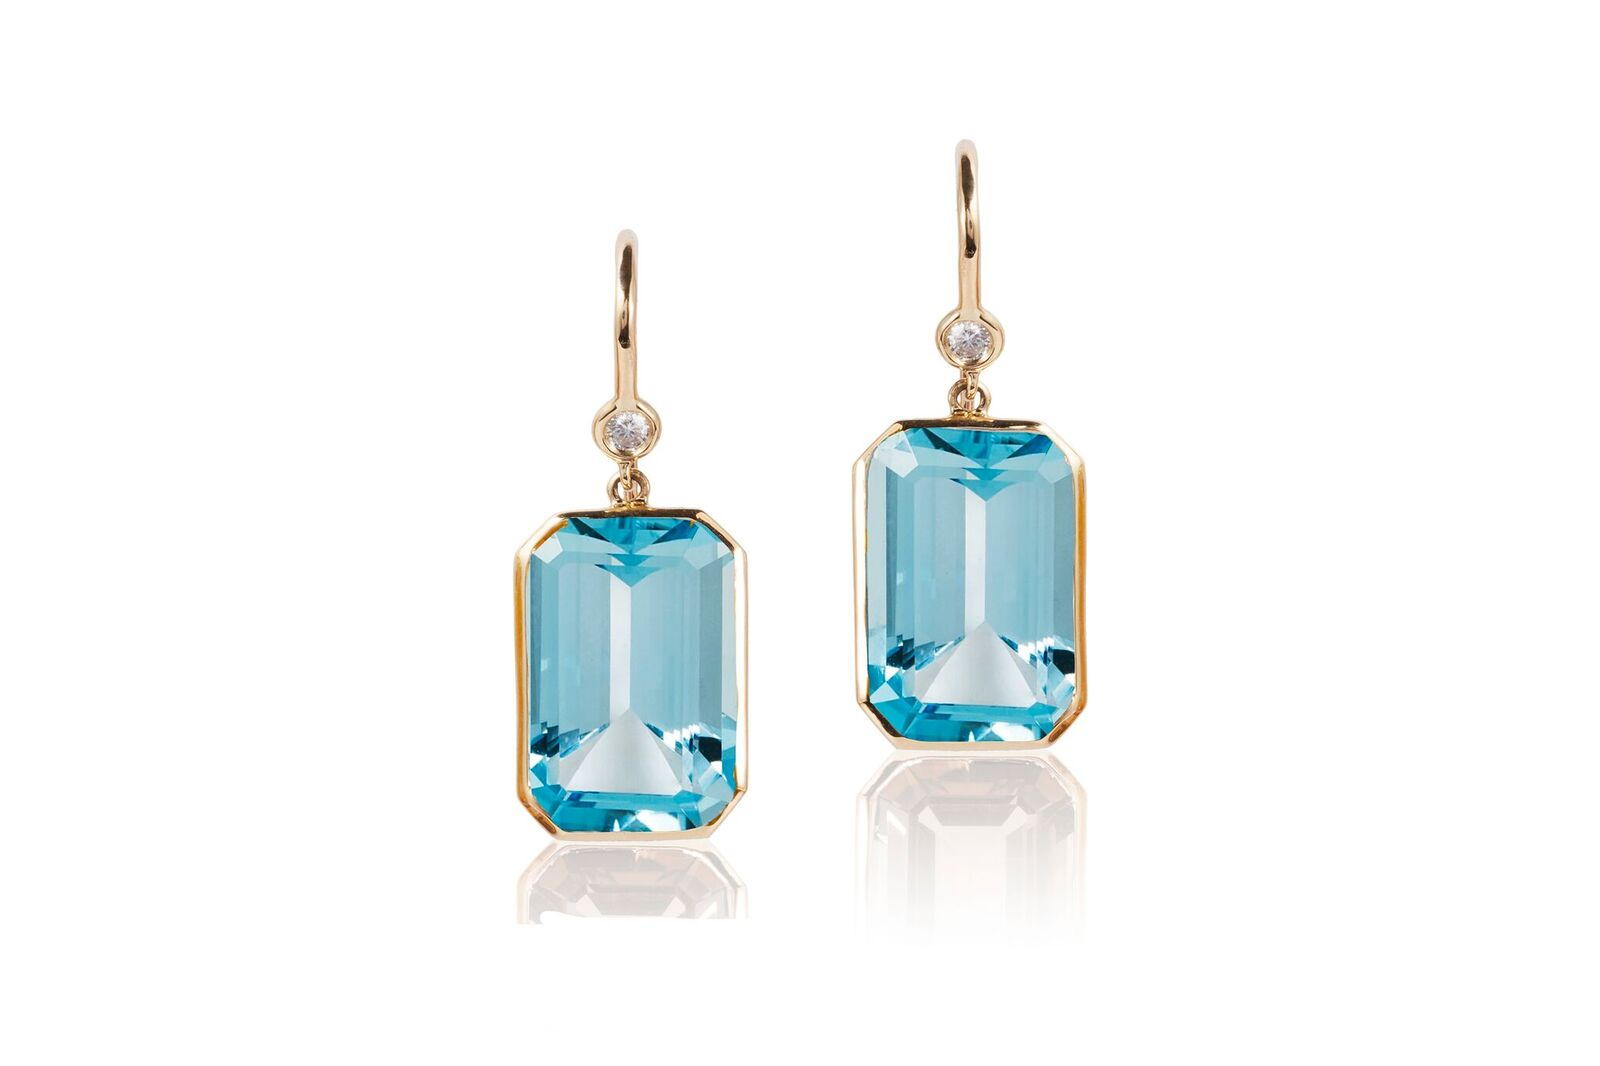 Emerald-cut Blue Topaz and Diamond Drop Earrings